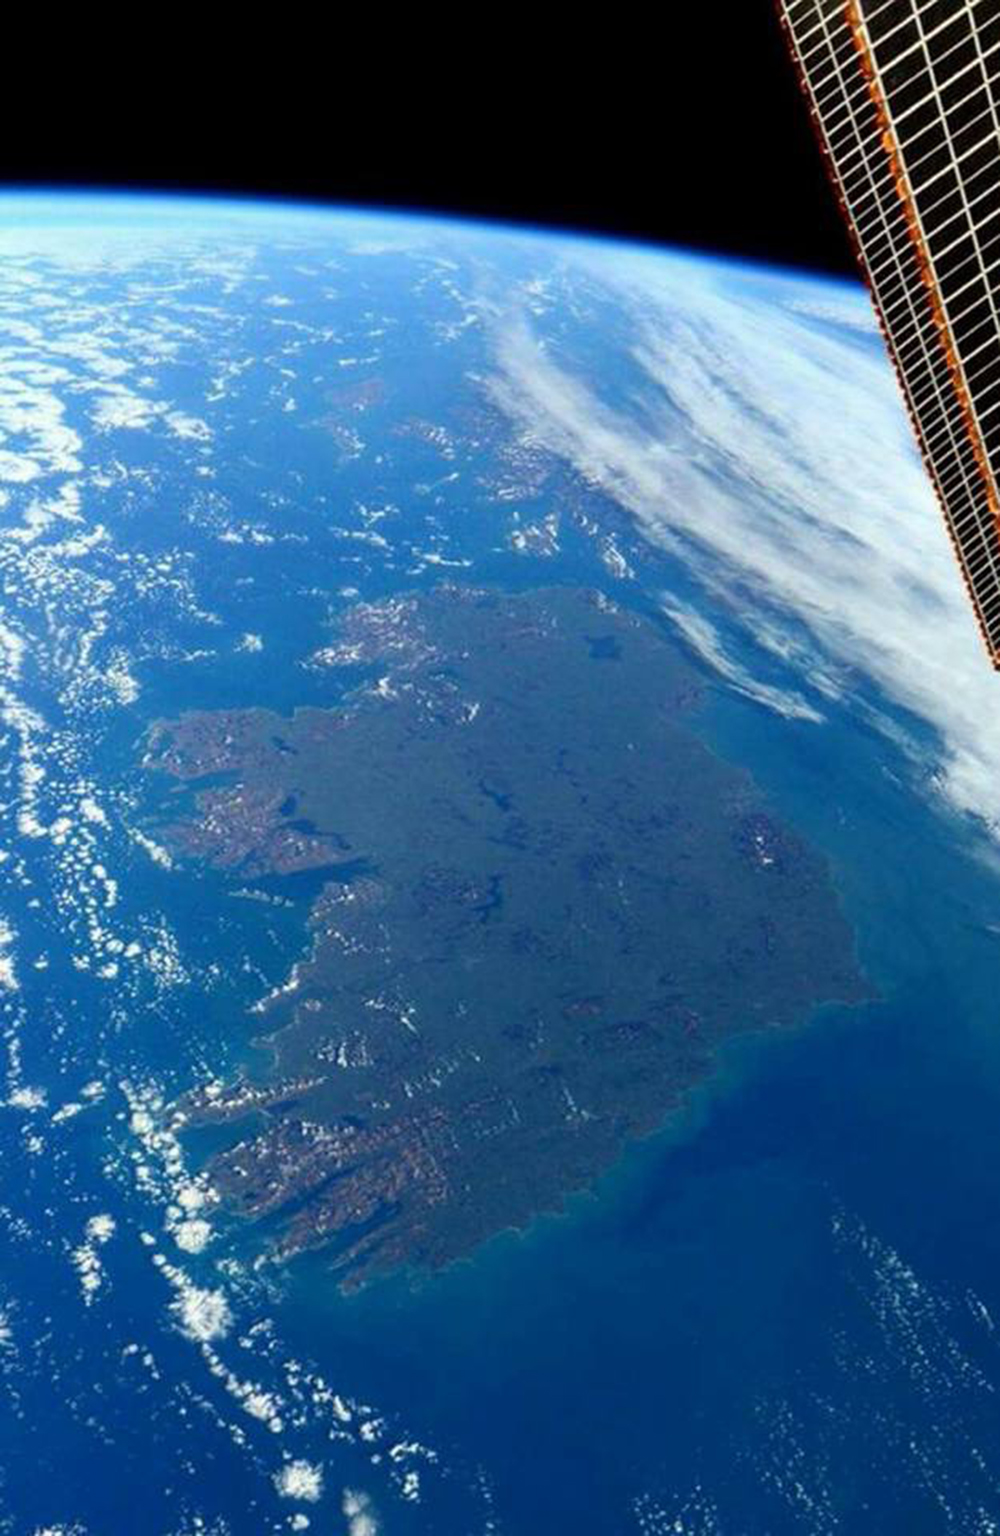 Ireland From space by @AstroTerry